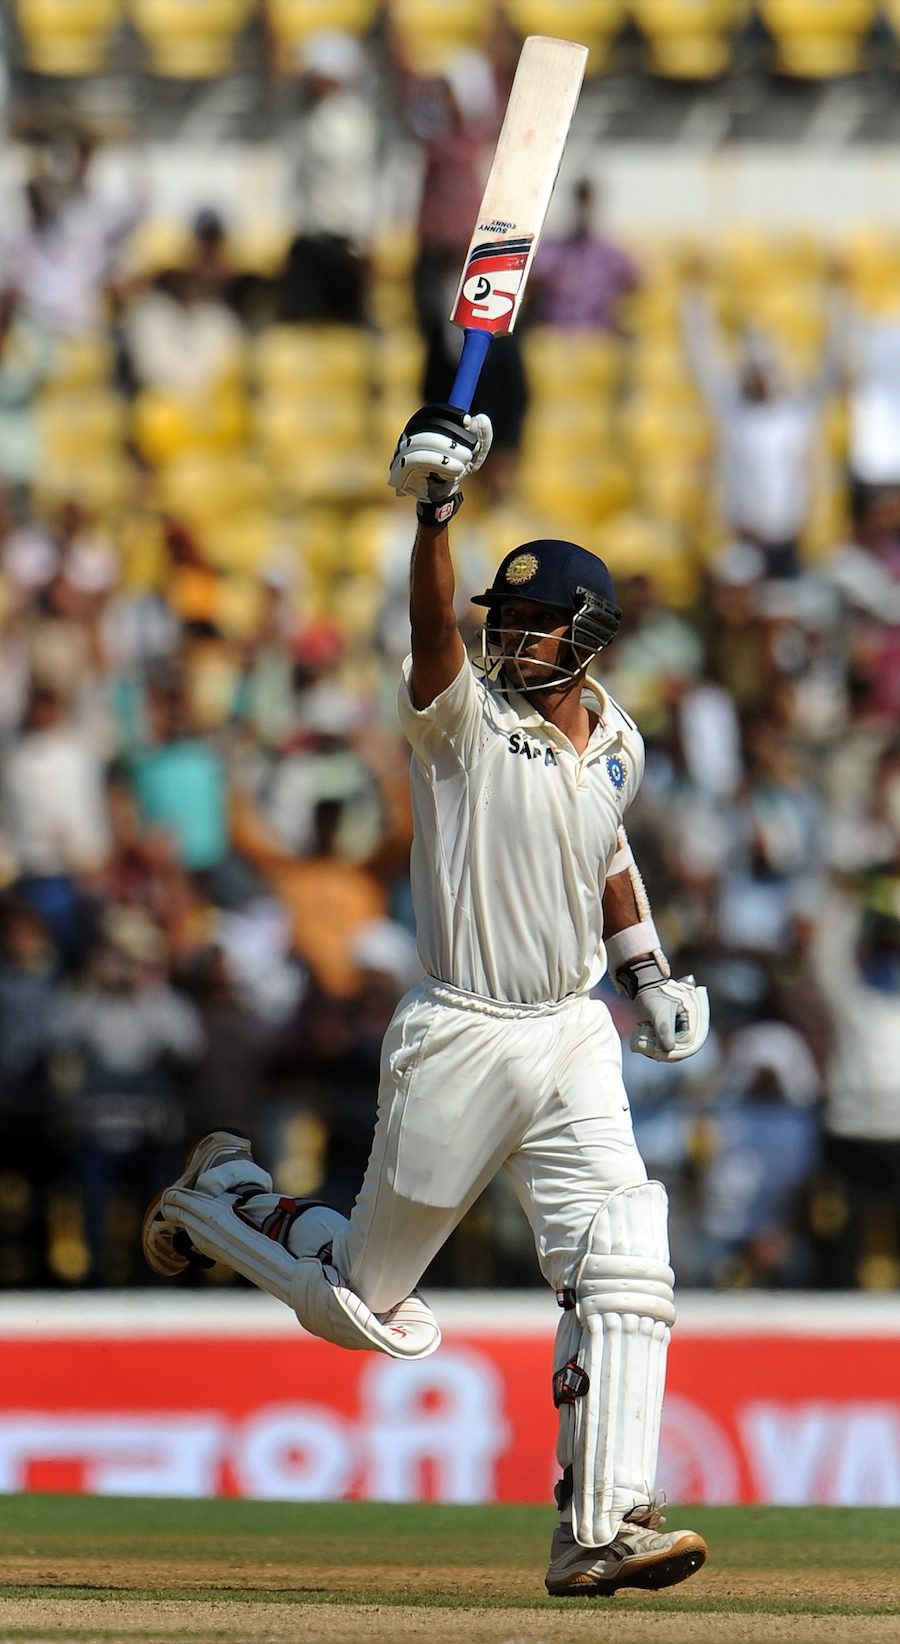 SA vs IND 2018: Five Memorable Test Matches Between The Two